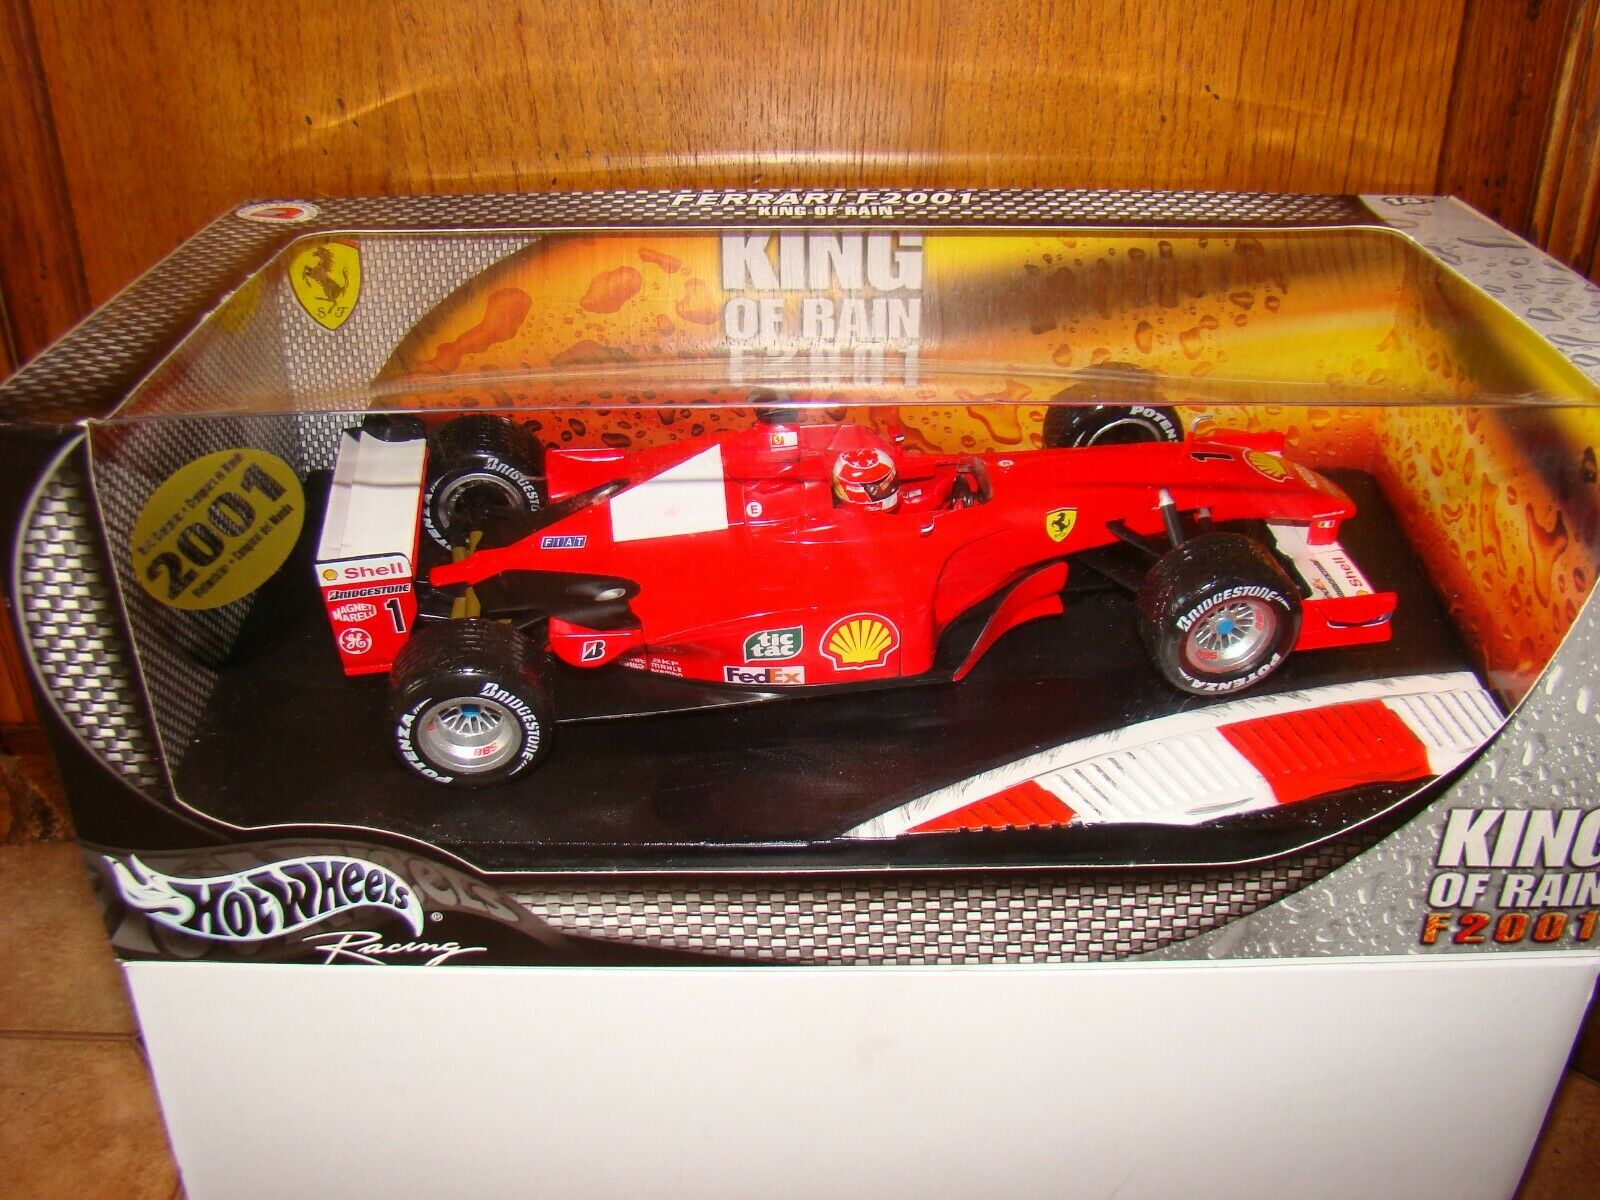 FERRARI F1 2001 KING OF RAIN    M.SCHUMACHER  1 18EME LIMITED EDITION TRES  RARE